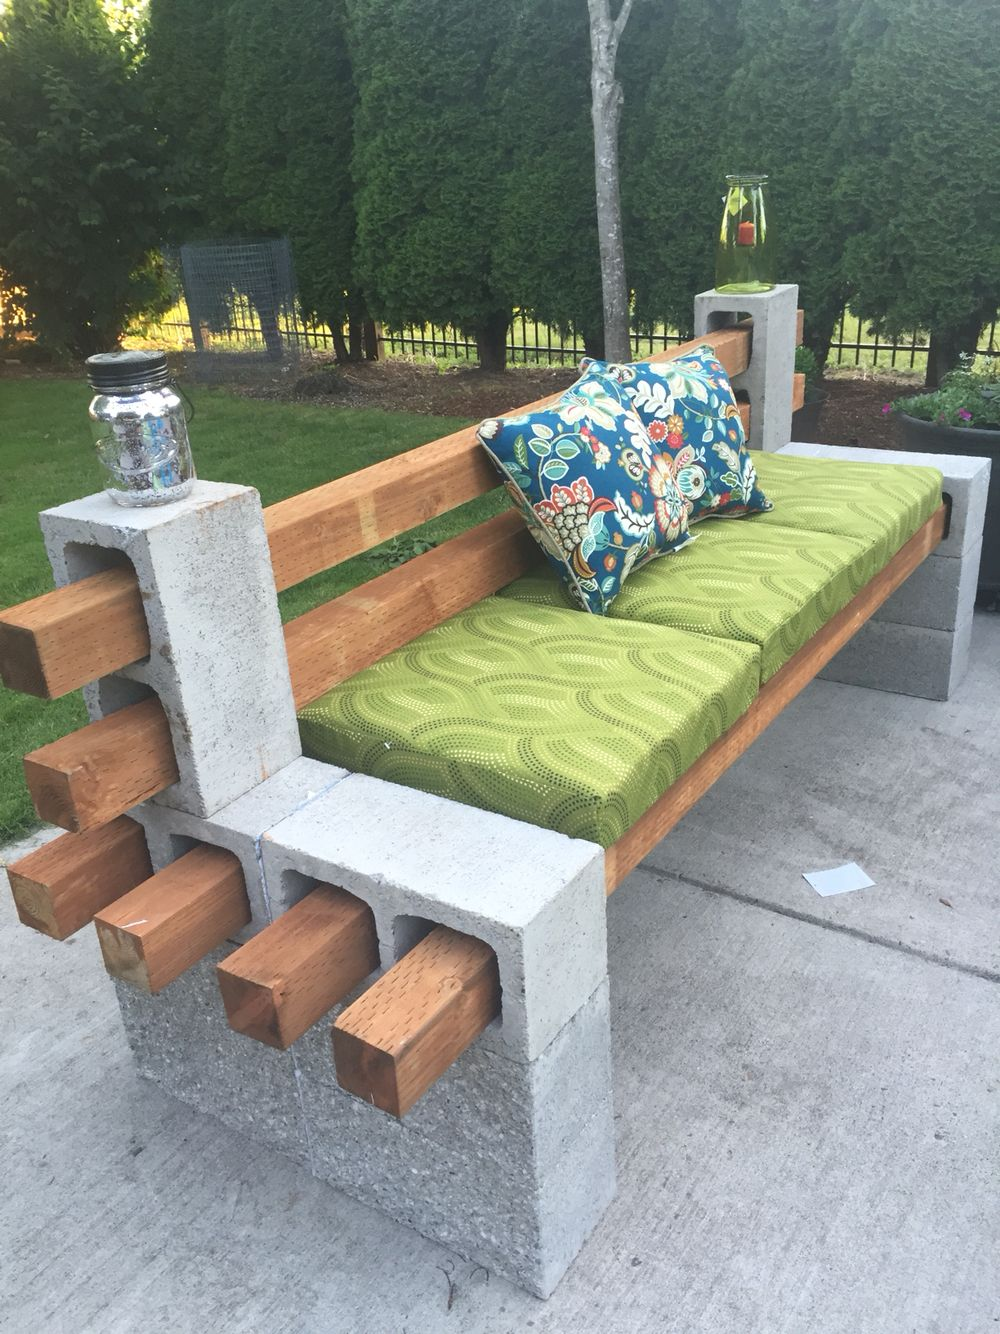 13 DIY Patio Furniture Ideas That Are Simple And Cheap   Page 2 Of 14    Bees And Roses